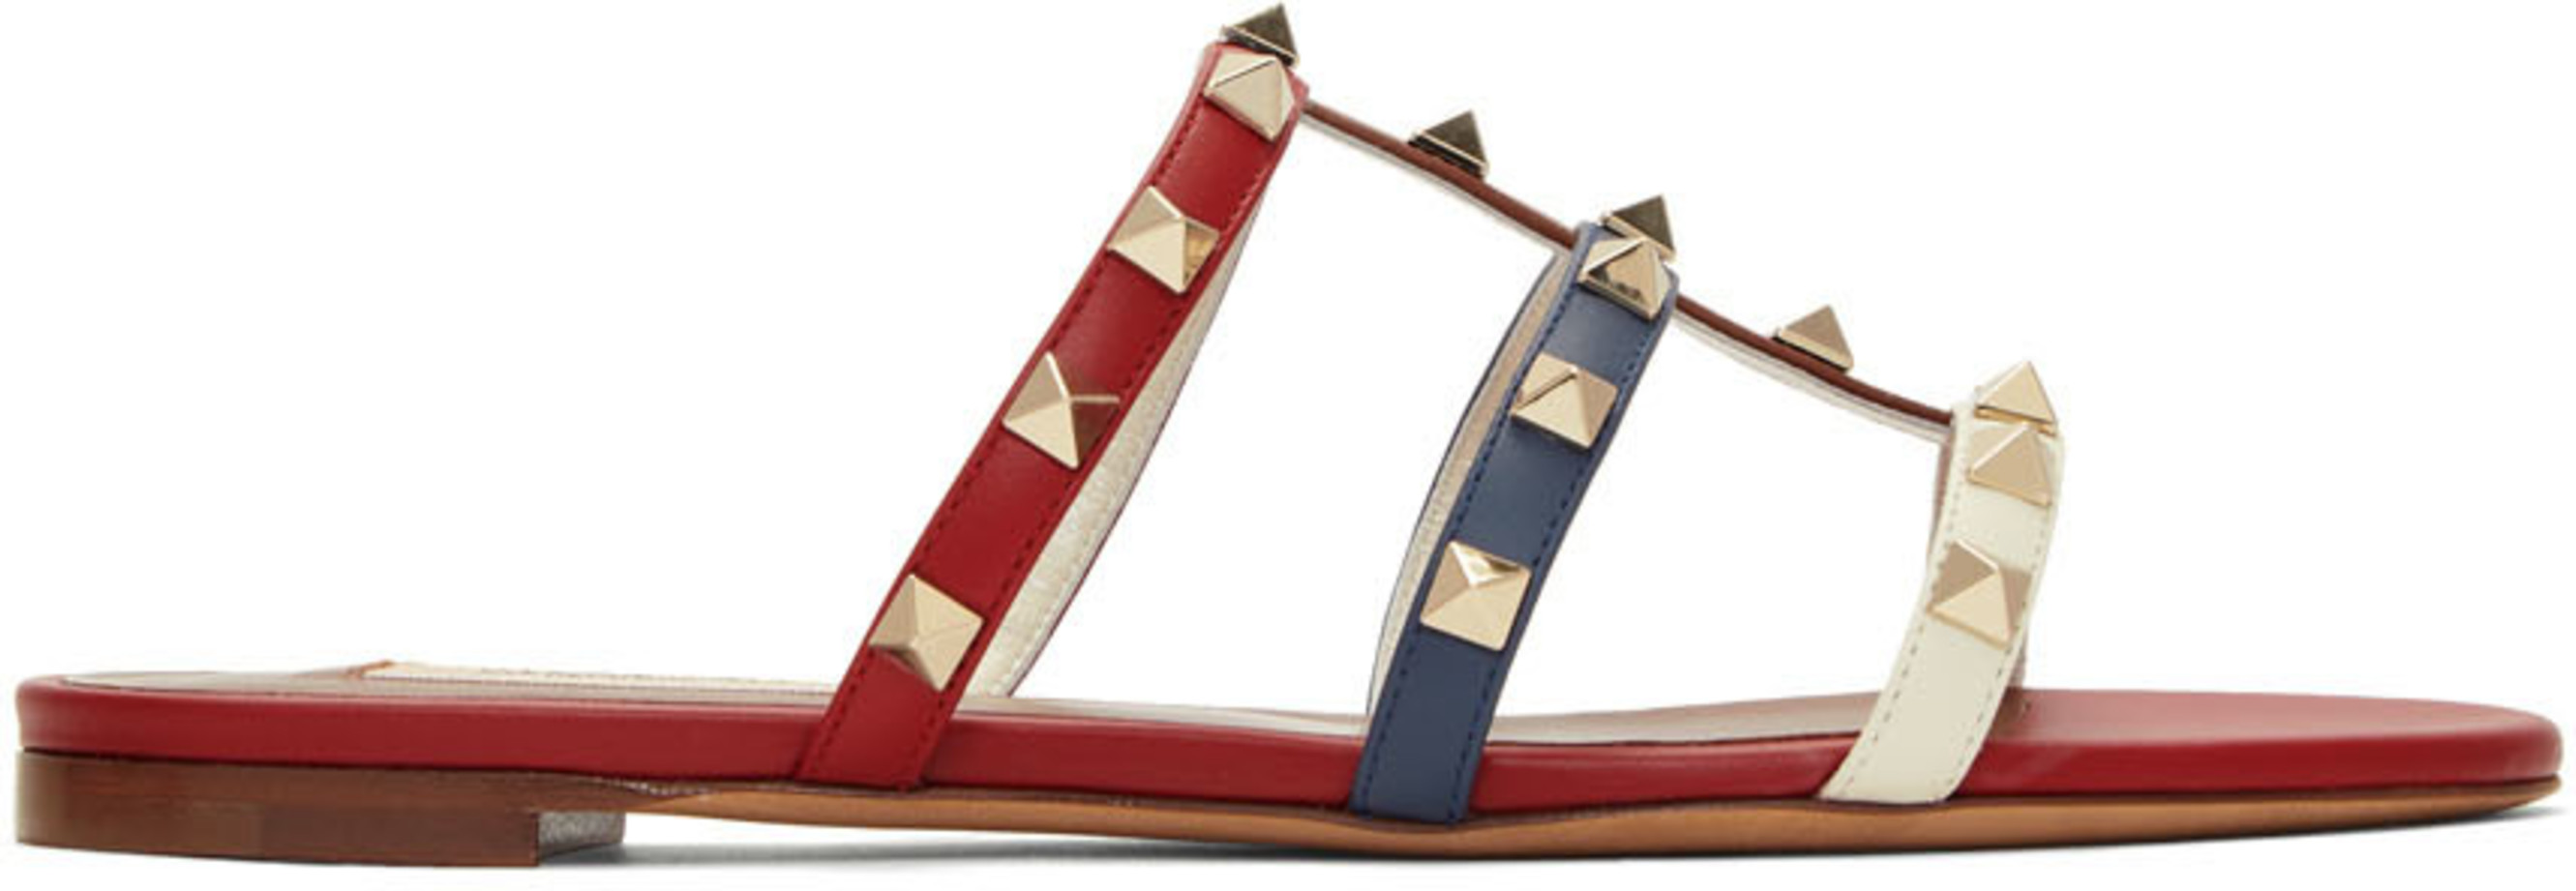 bd6fa443677 Valentino shoes for Women